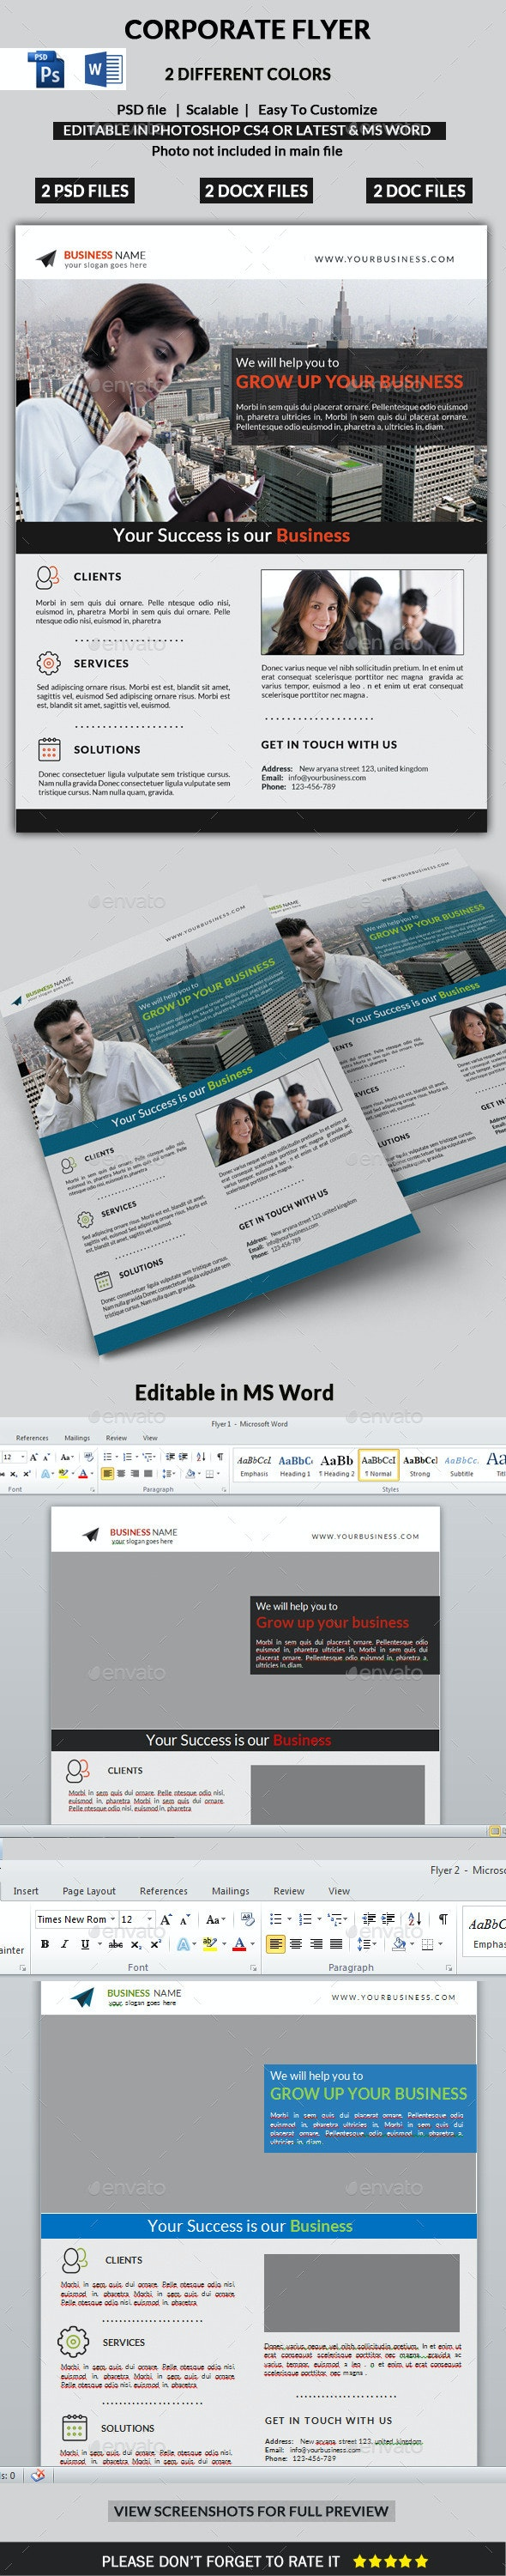 Corporate Flyer (PSD & MS Word) - Corporate Flyers